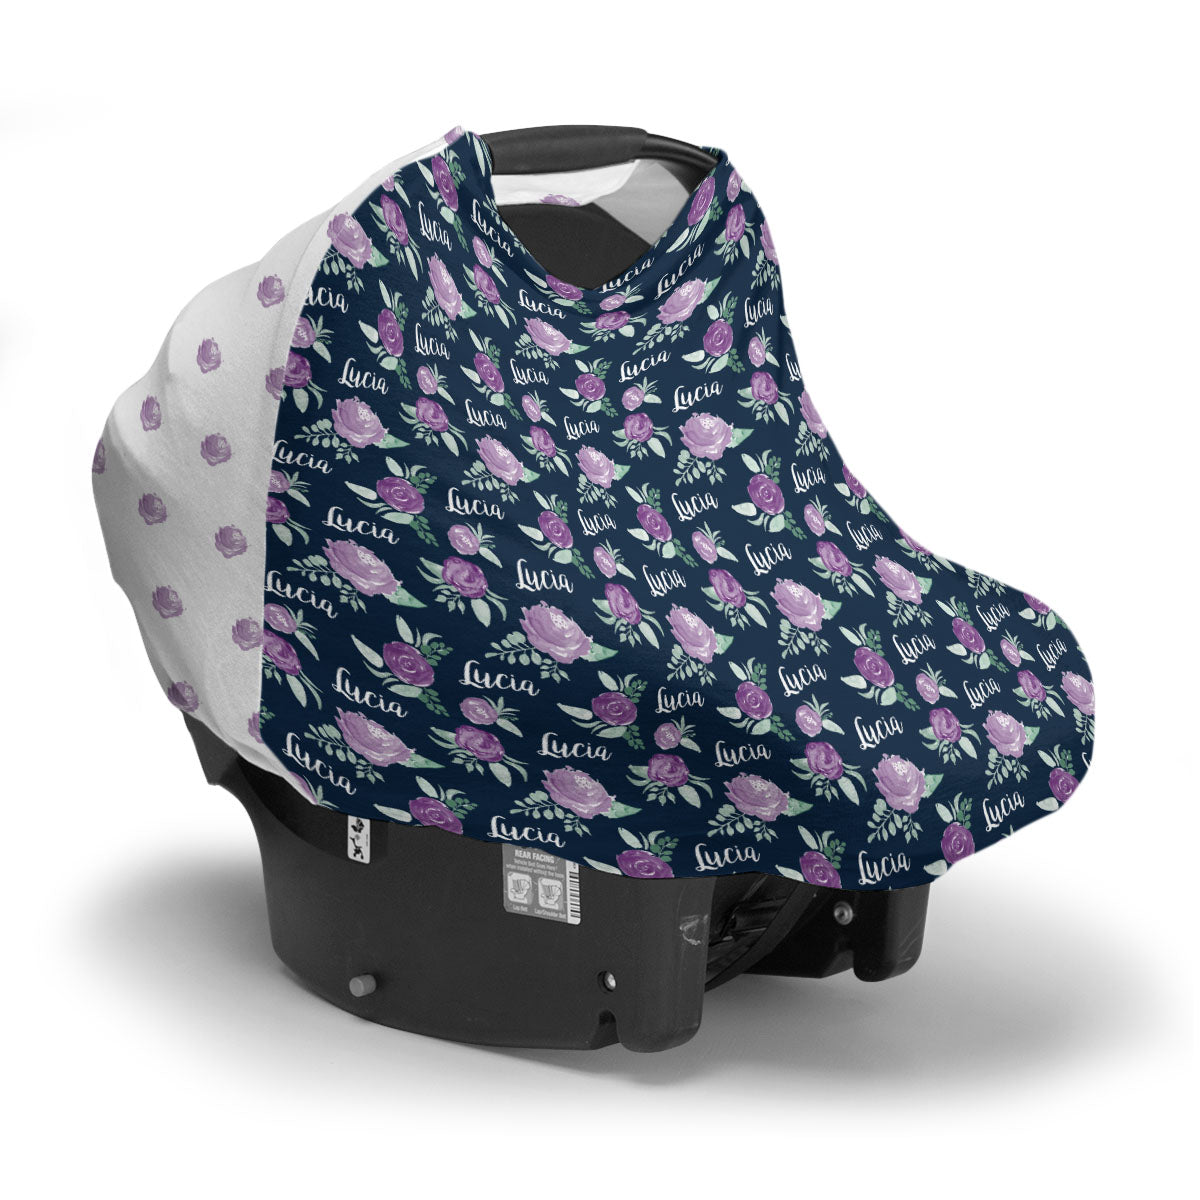 Lucia's Violet Garden | Car Seat Cover (Multi-Use)